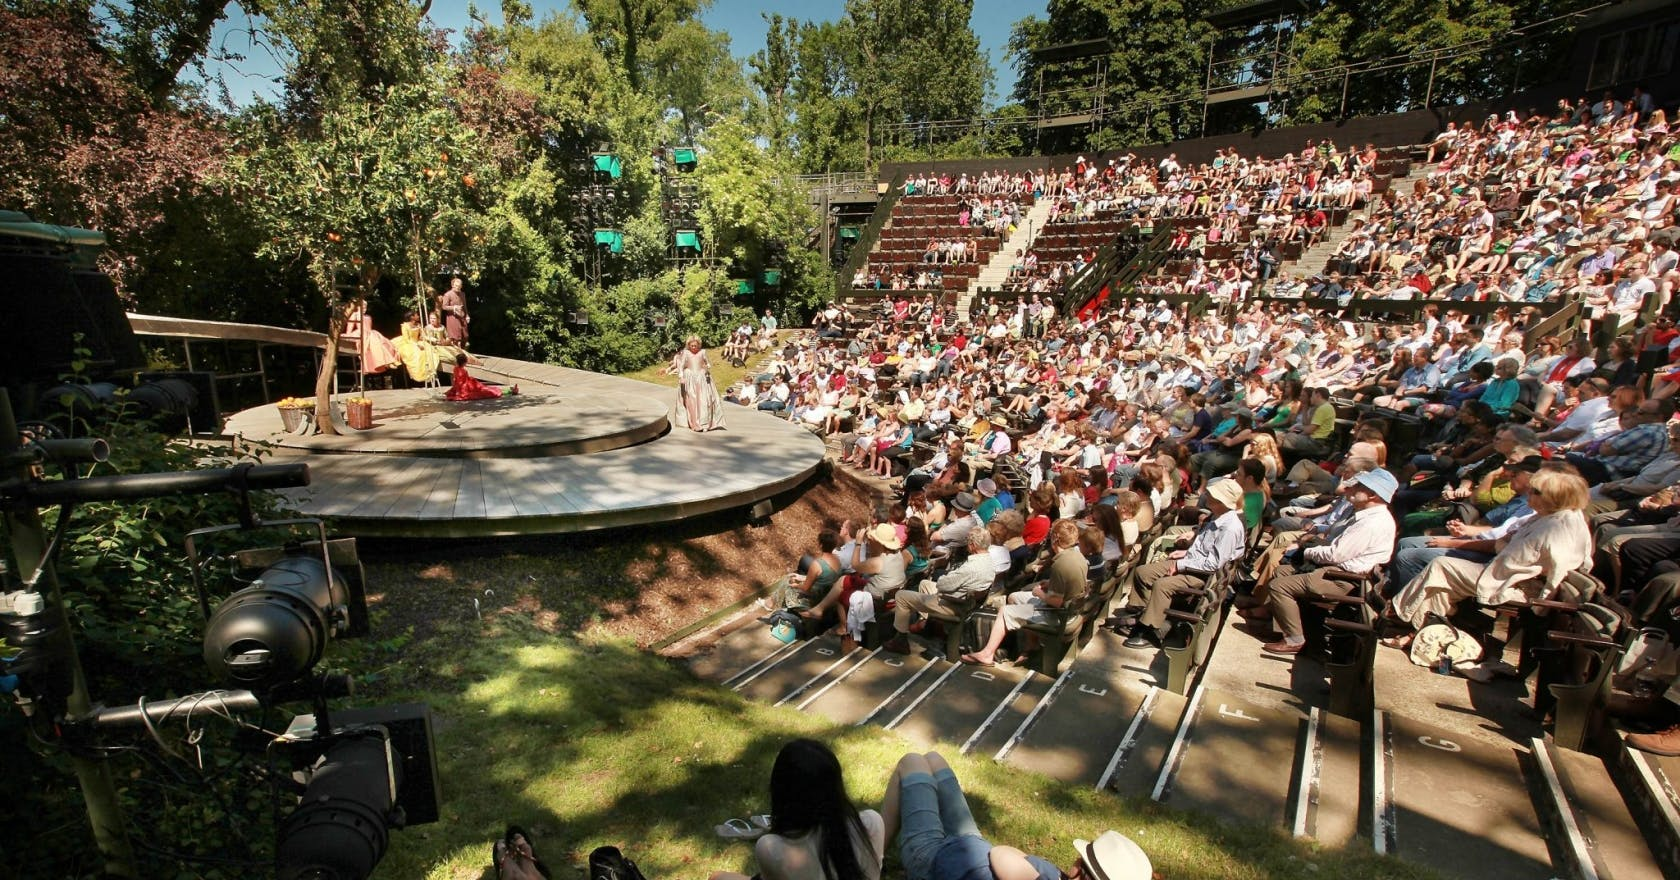 Regent's Park Open Air Theatre is reopening this summer with an iconic musical